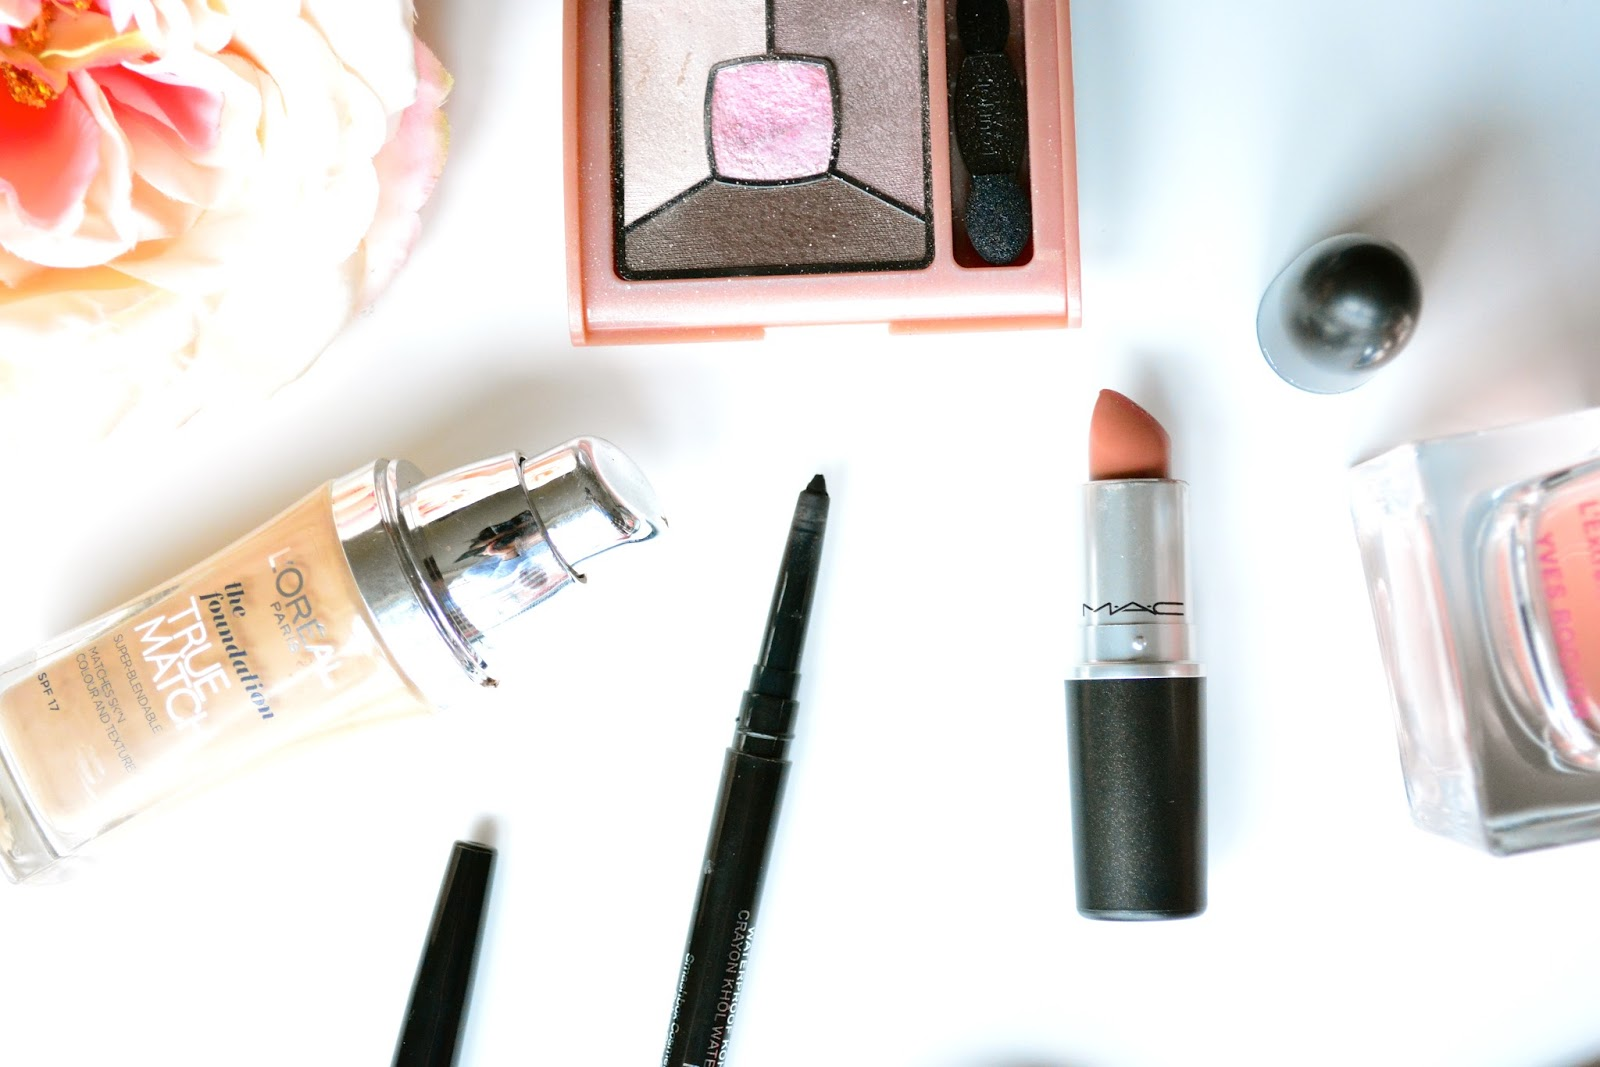 The Spring Essentials - My Top Beauty Picks, Bourjois, Smashbox, Mac Honeylove, L'Oreal True Match, Yves Rocher